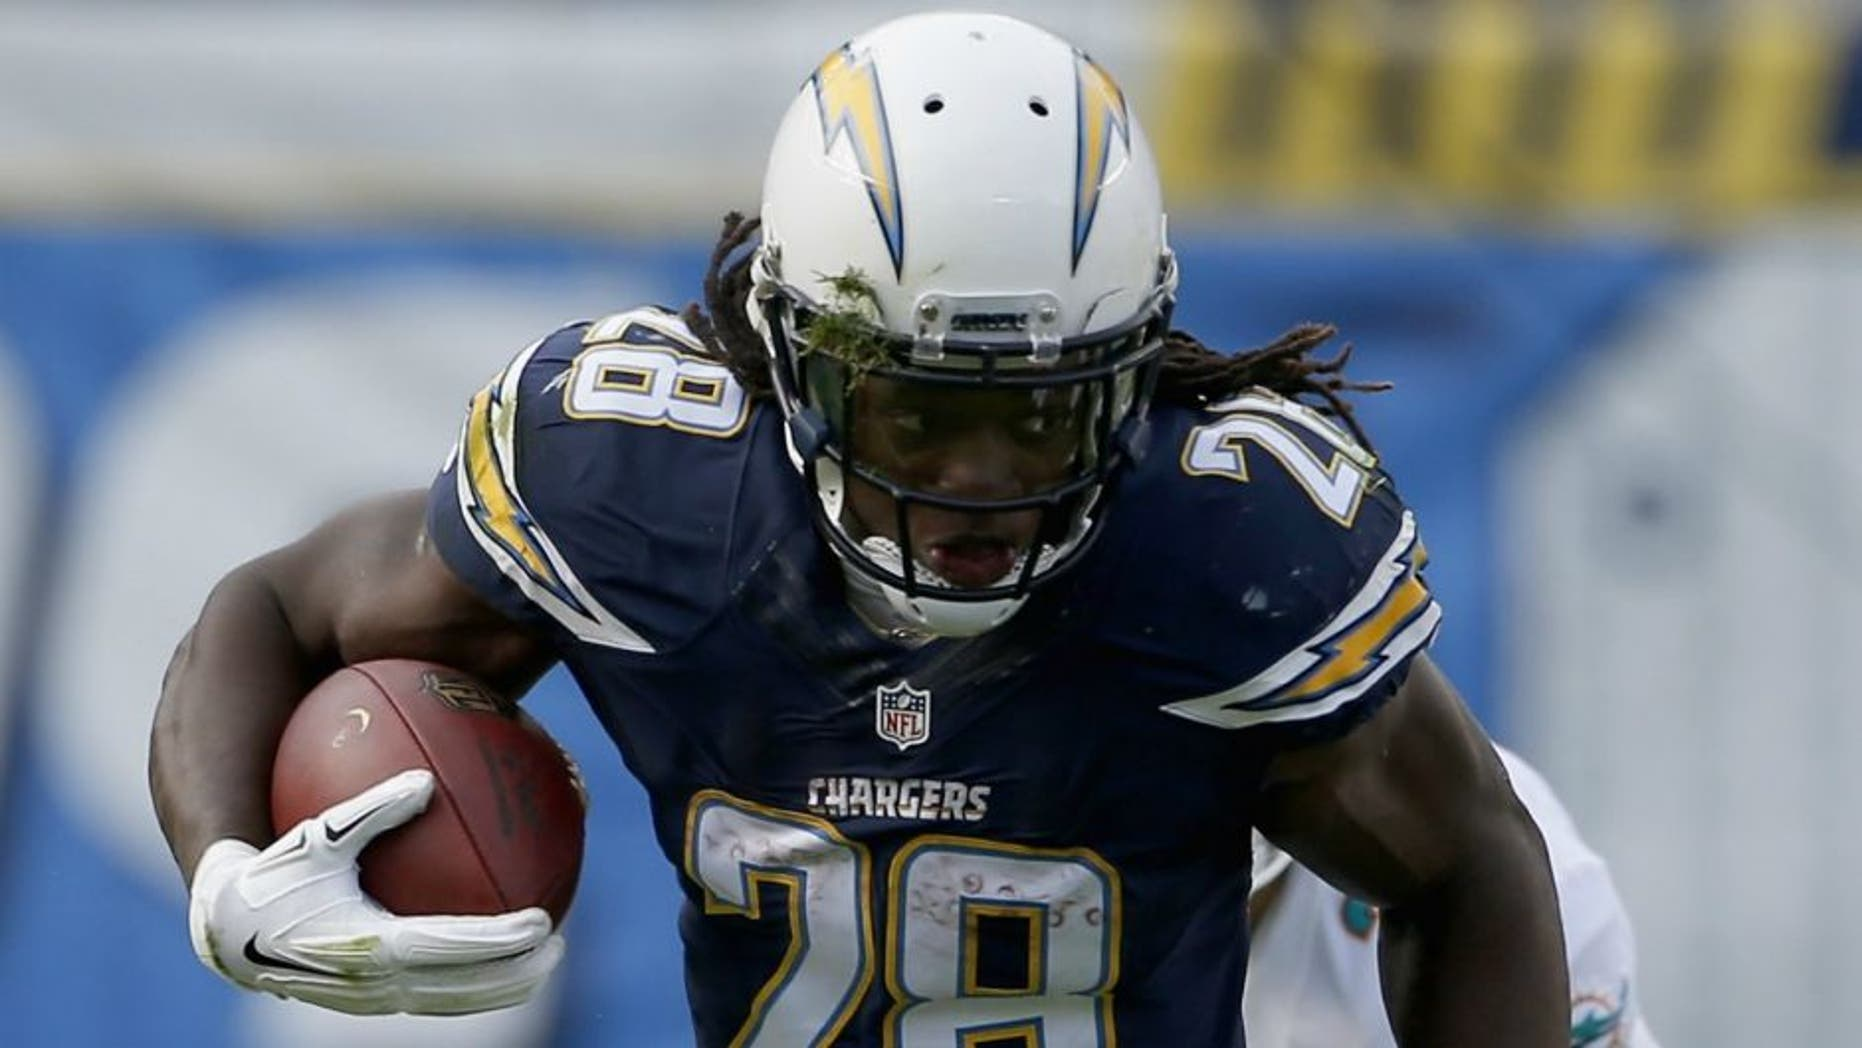 at Qualcomm Stadium on December 20, 2015 in San Diego, California.,SAN DIEGO, CA - DECEMBER 20: Melvin Gordon #28 of the San Diego Chargers runs against Bobby McCain #28 of the Miami Dolphins at Qualcomm Stadium on December 20, 2015 in San Diego, California. (Photo by Todd Warshaw/Getty Images)